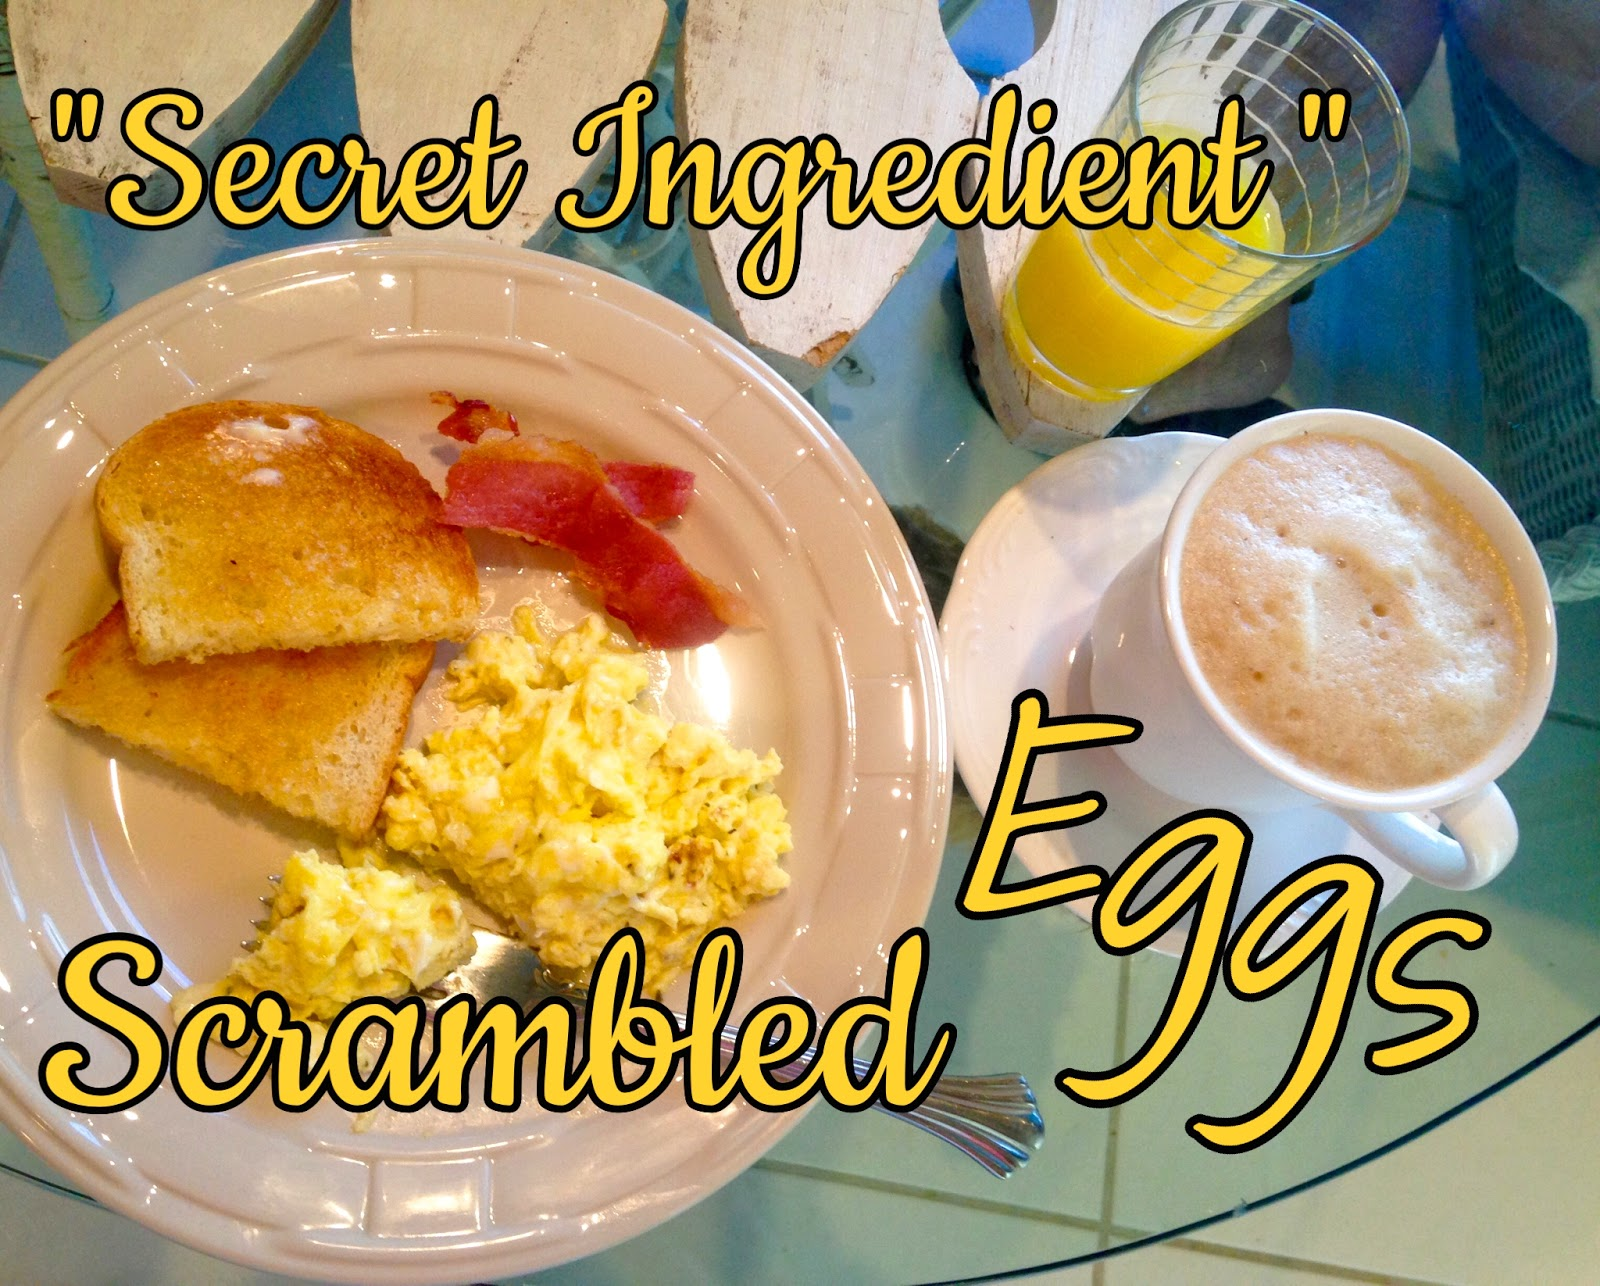 Rita 39 s recipes secret ingredient scrambled eggs Bhg recipes may 2016